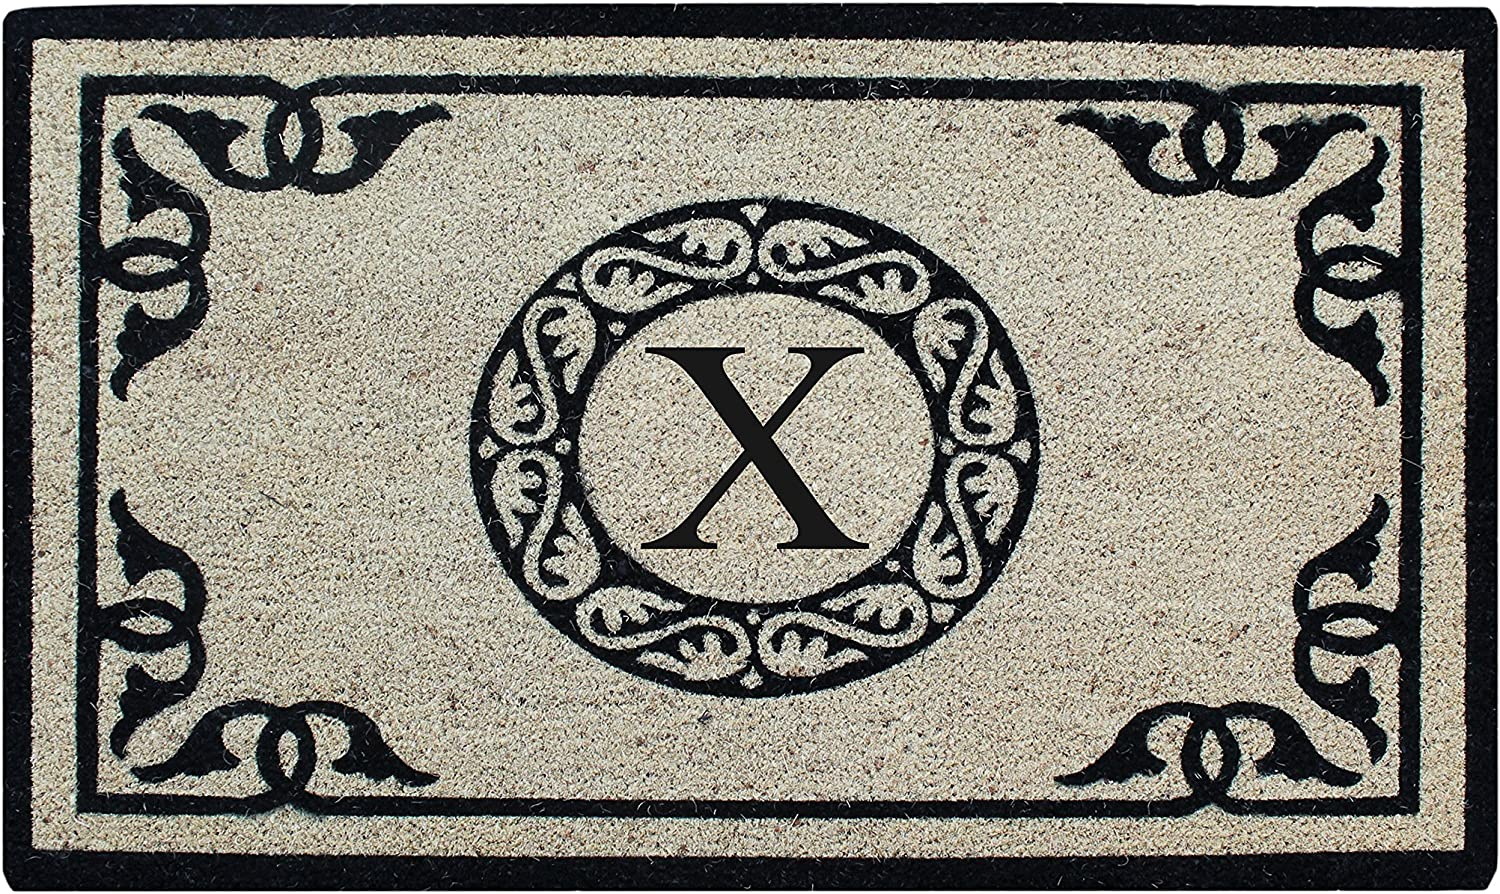 A1 Home Collections PT3006-1-X First Impression Hand Crafted by Artisans Bleach Printed Monogrammed Doormat, 24 X36